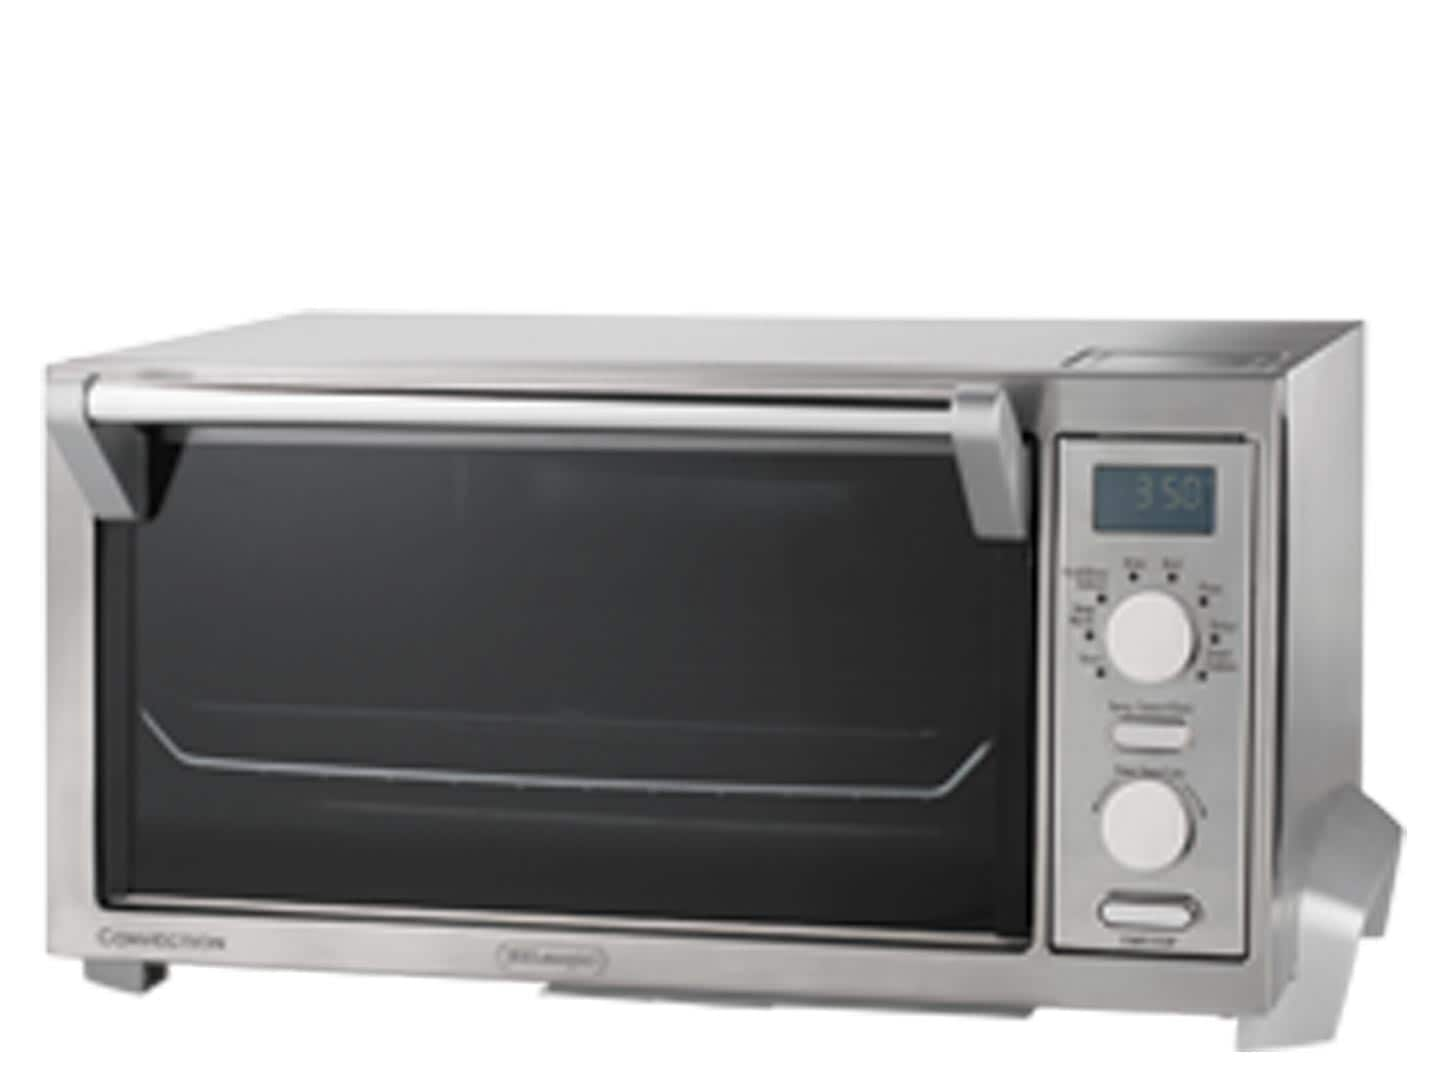 Countertop Convection Oven South Africa : Convection Oven Malaysia Digital Convection Oven Do1289